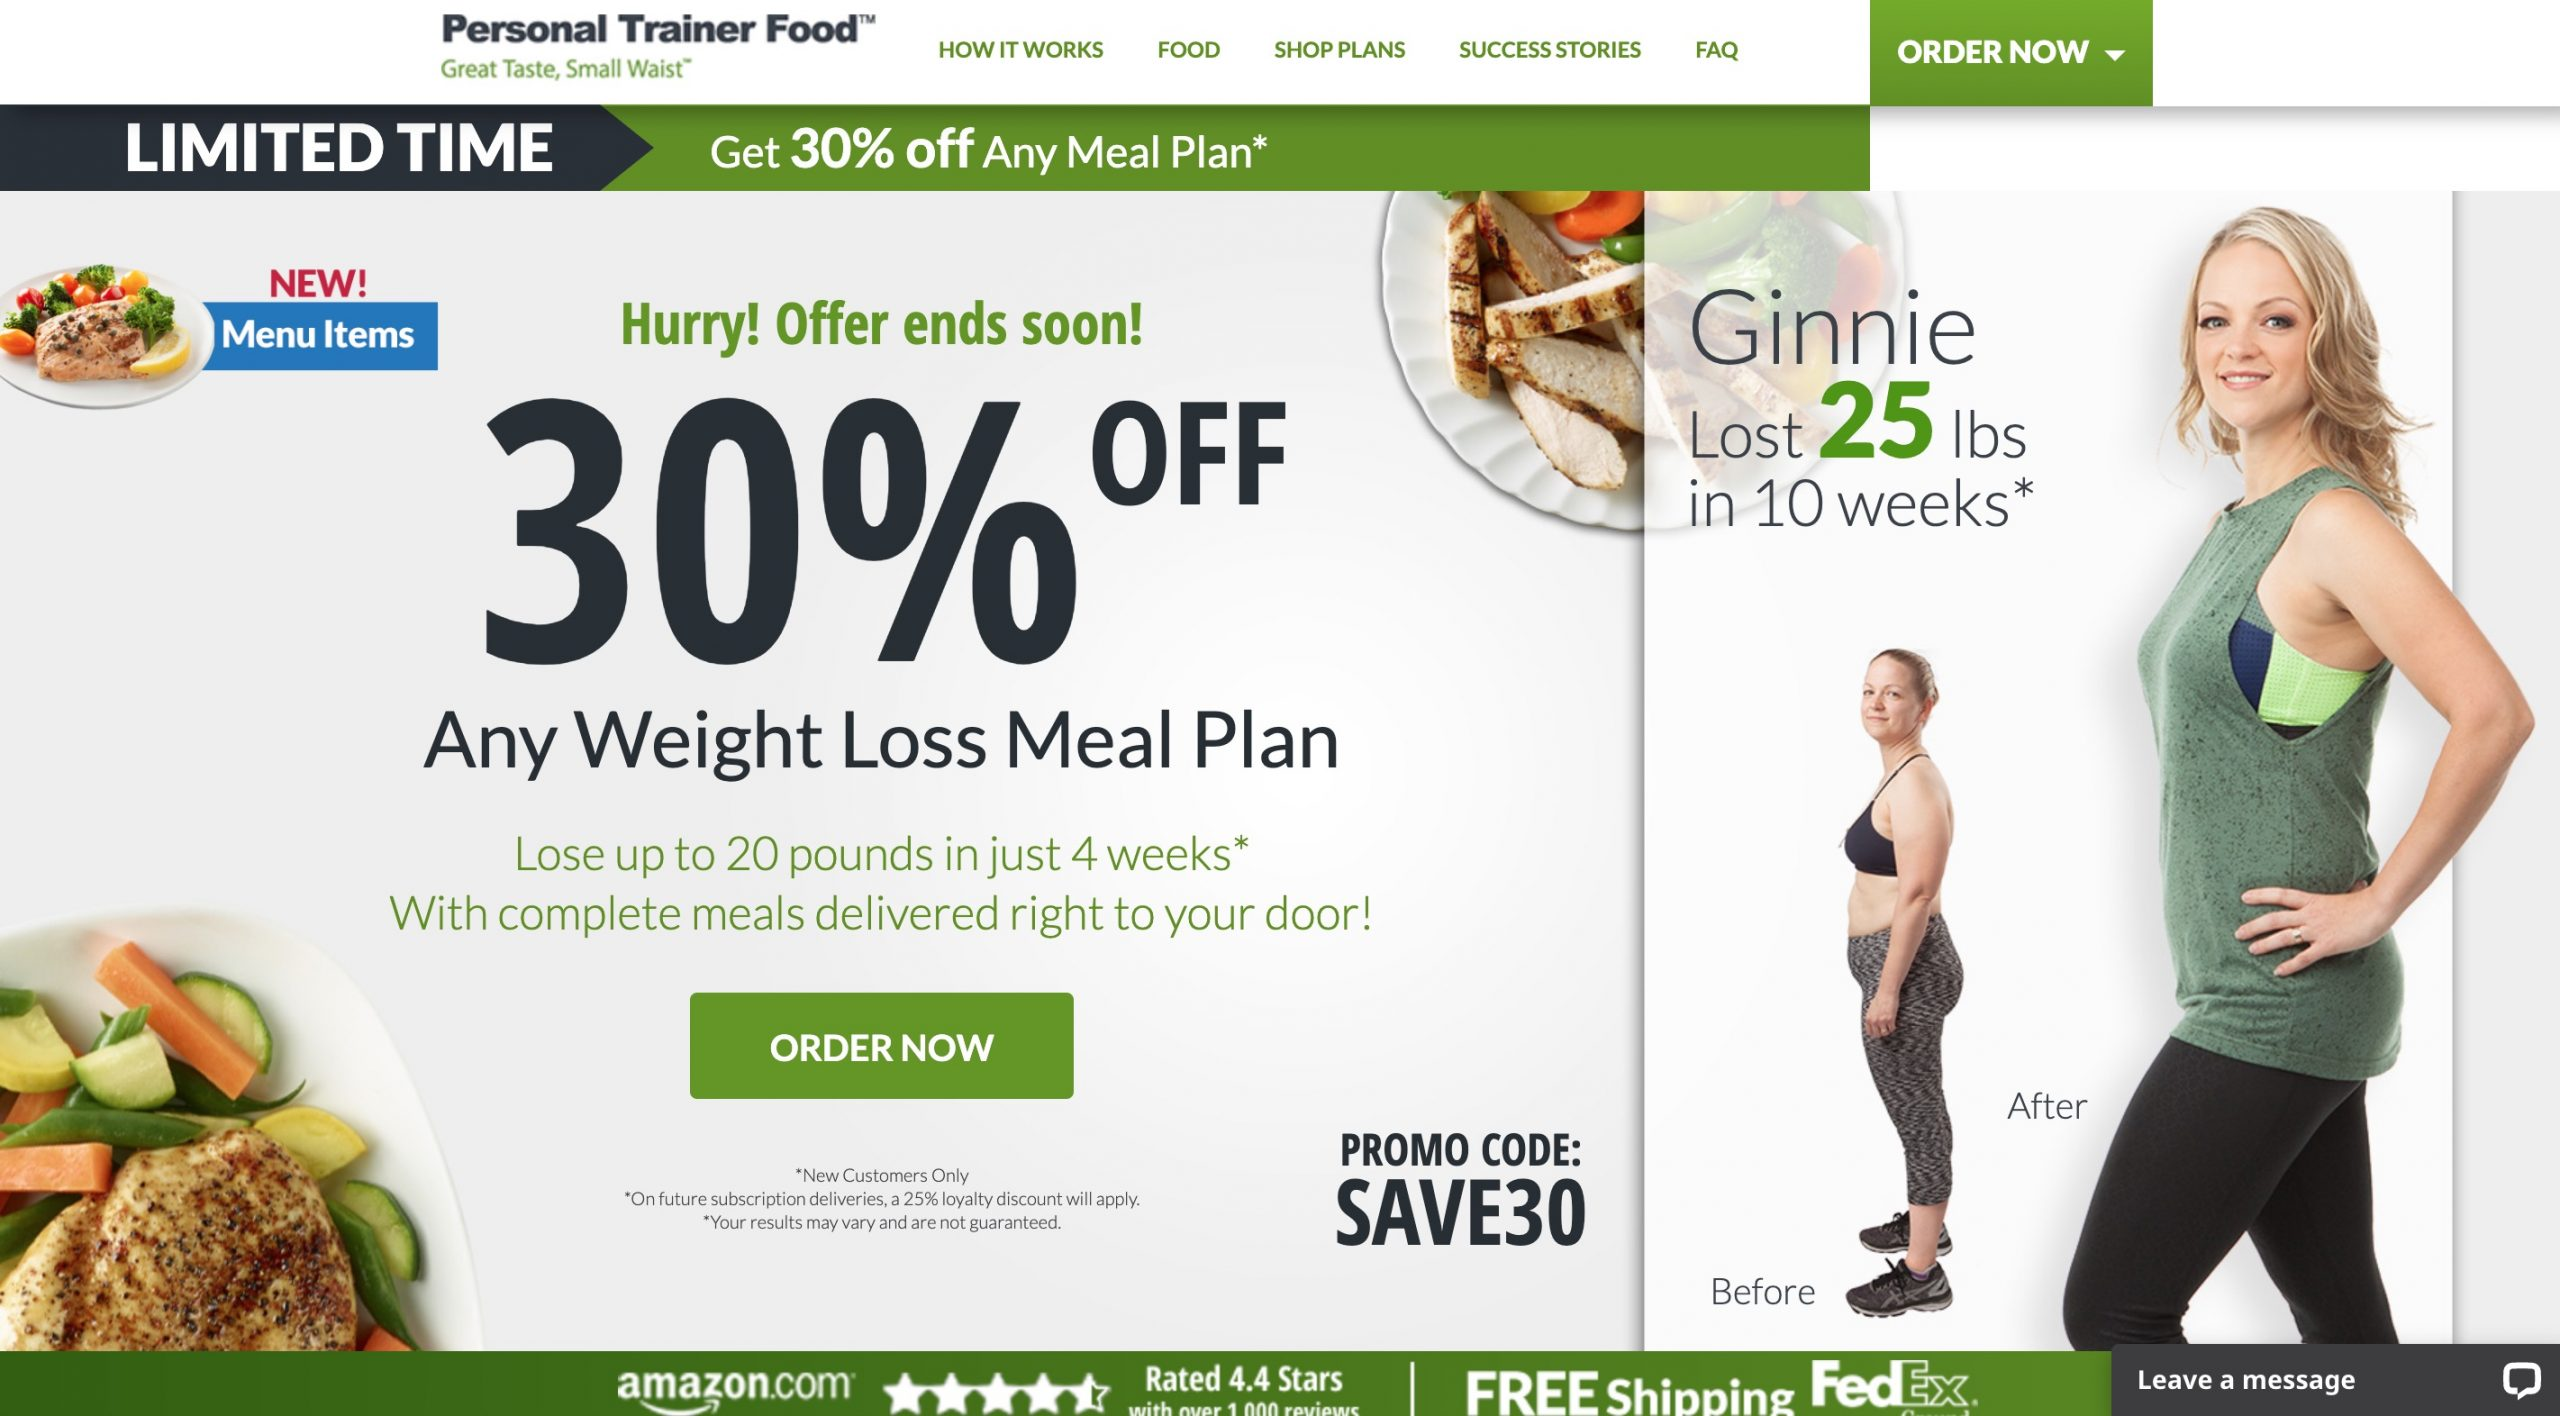 personal trainer food main page